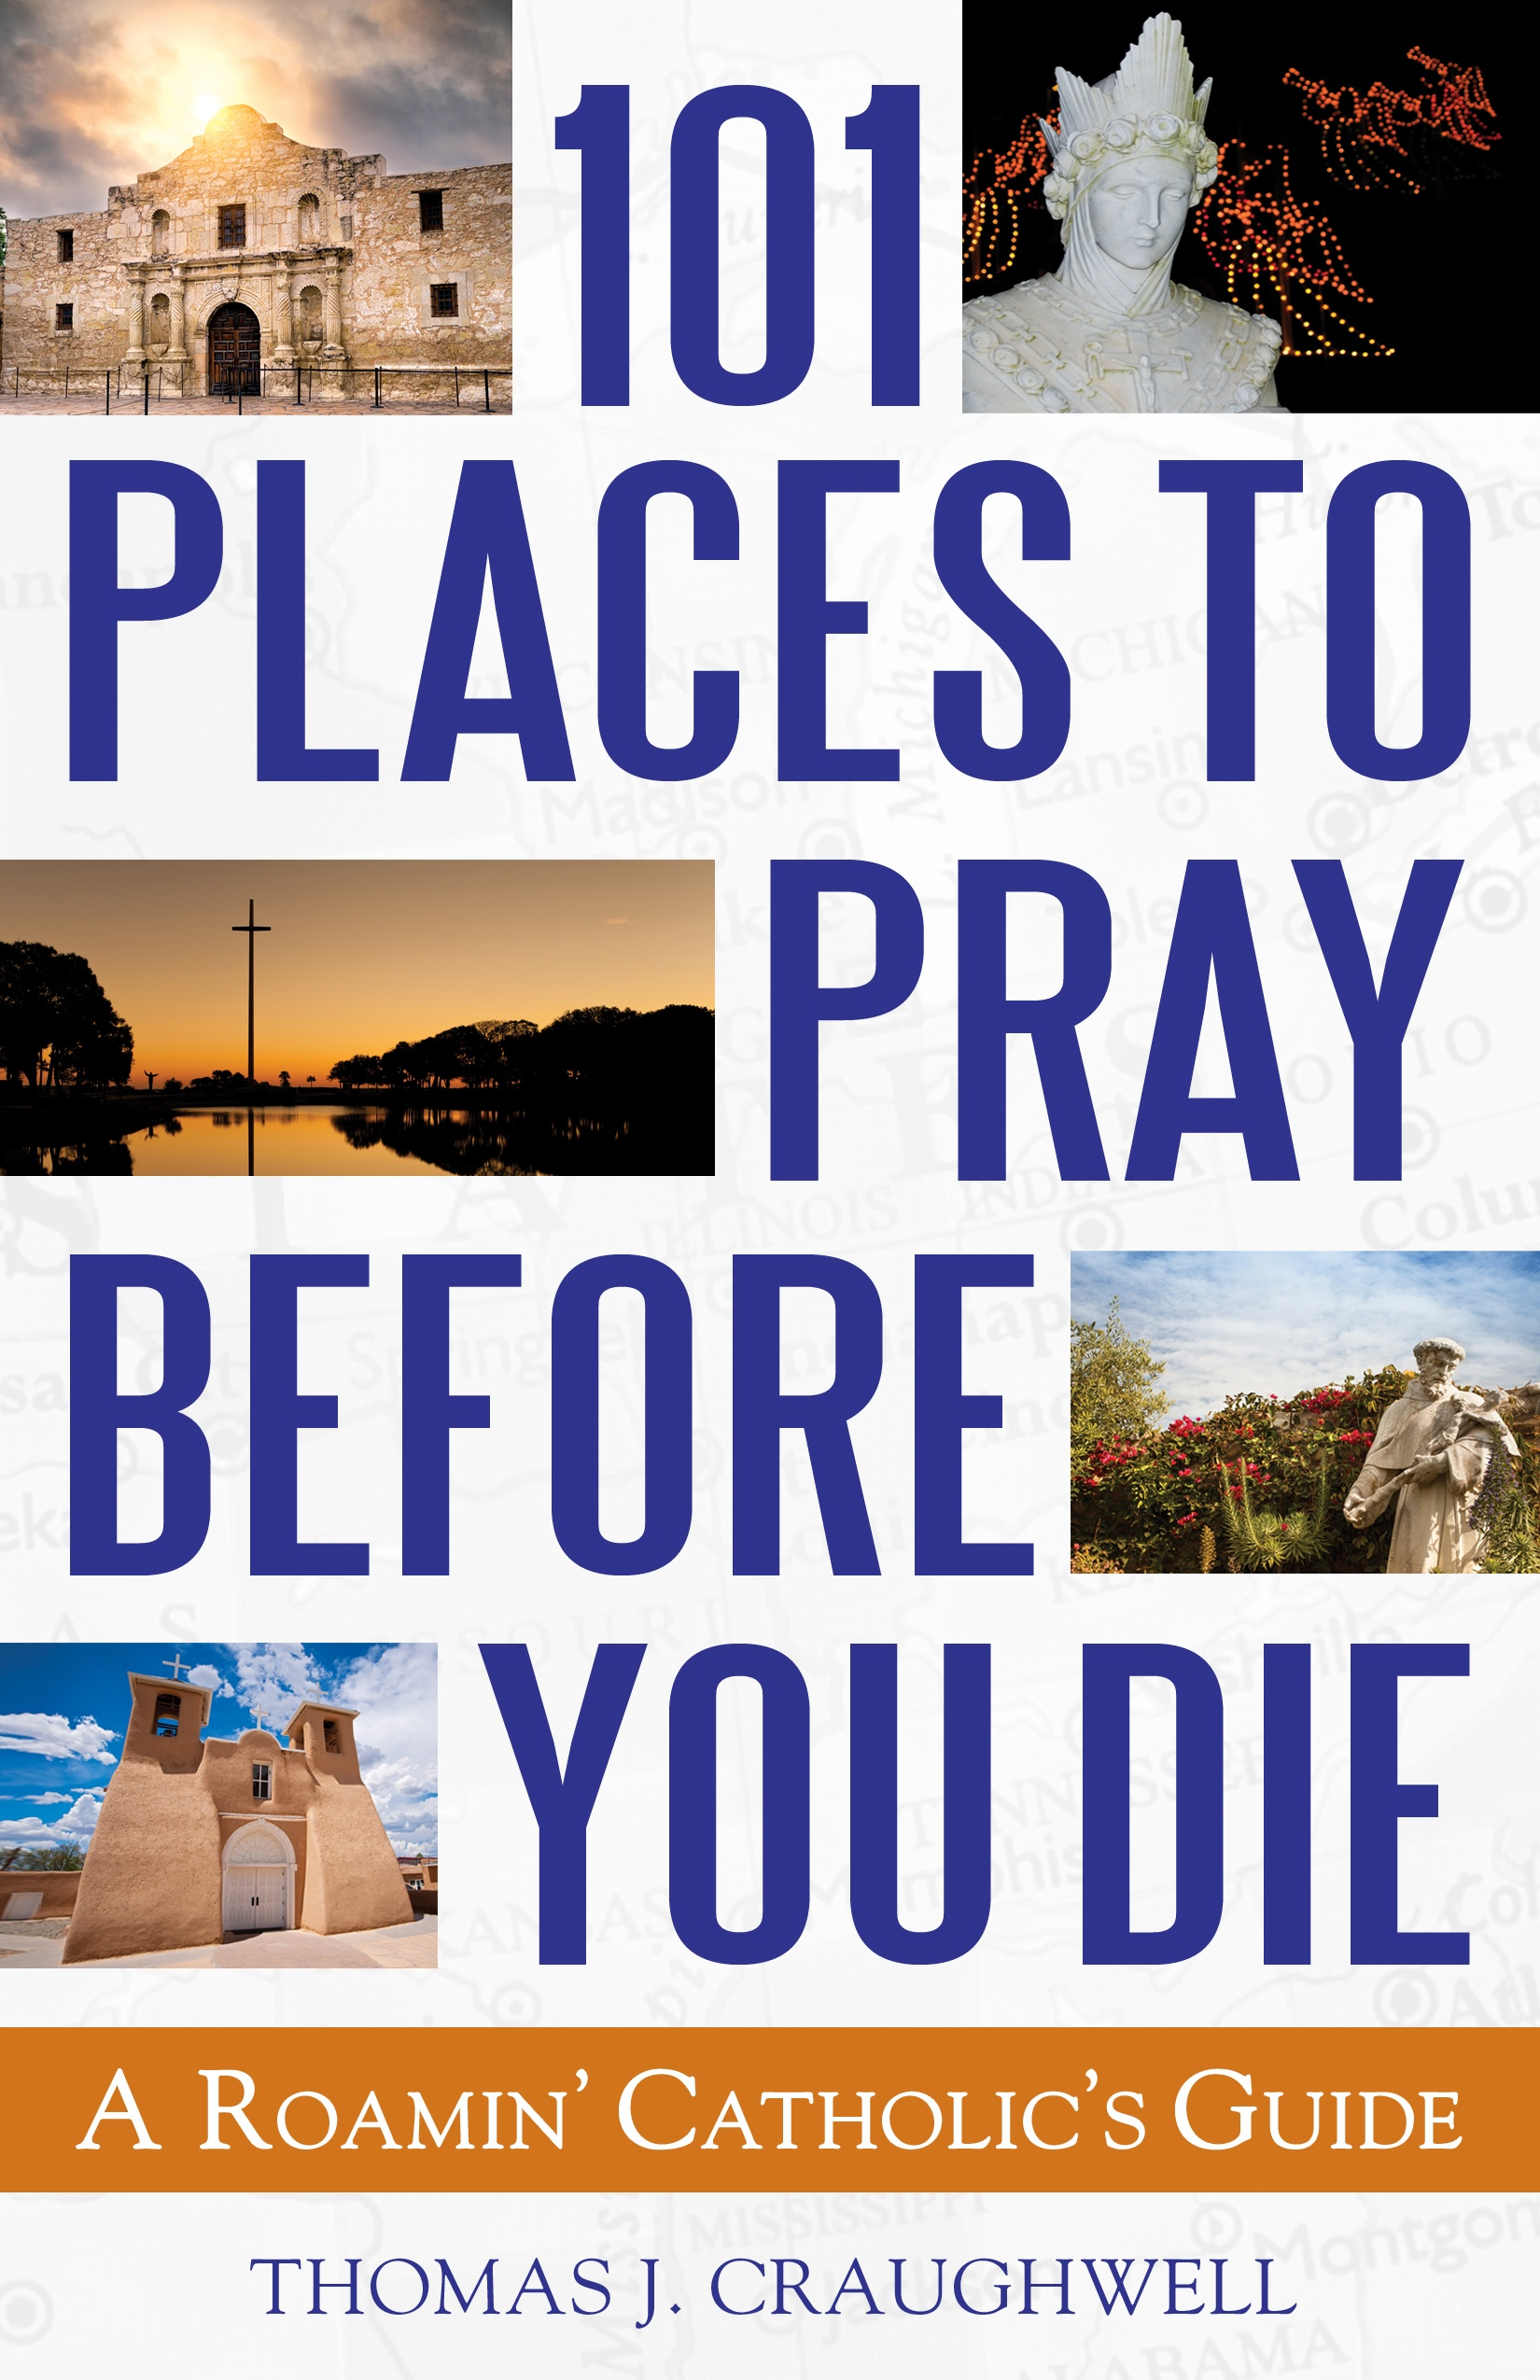 101_Places_to_Pray_Before_You_Die.jpg